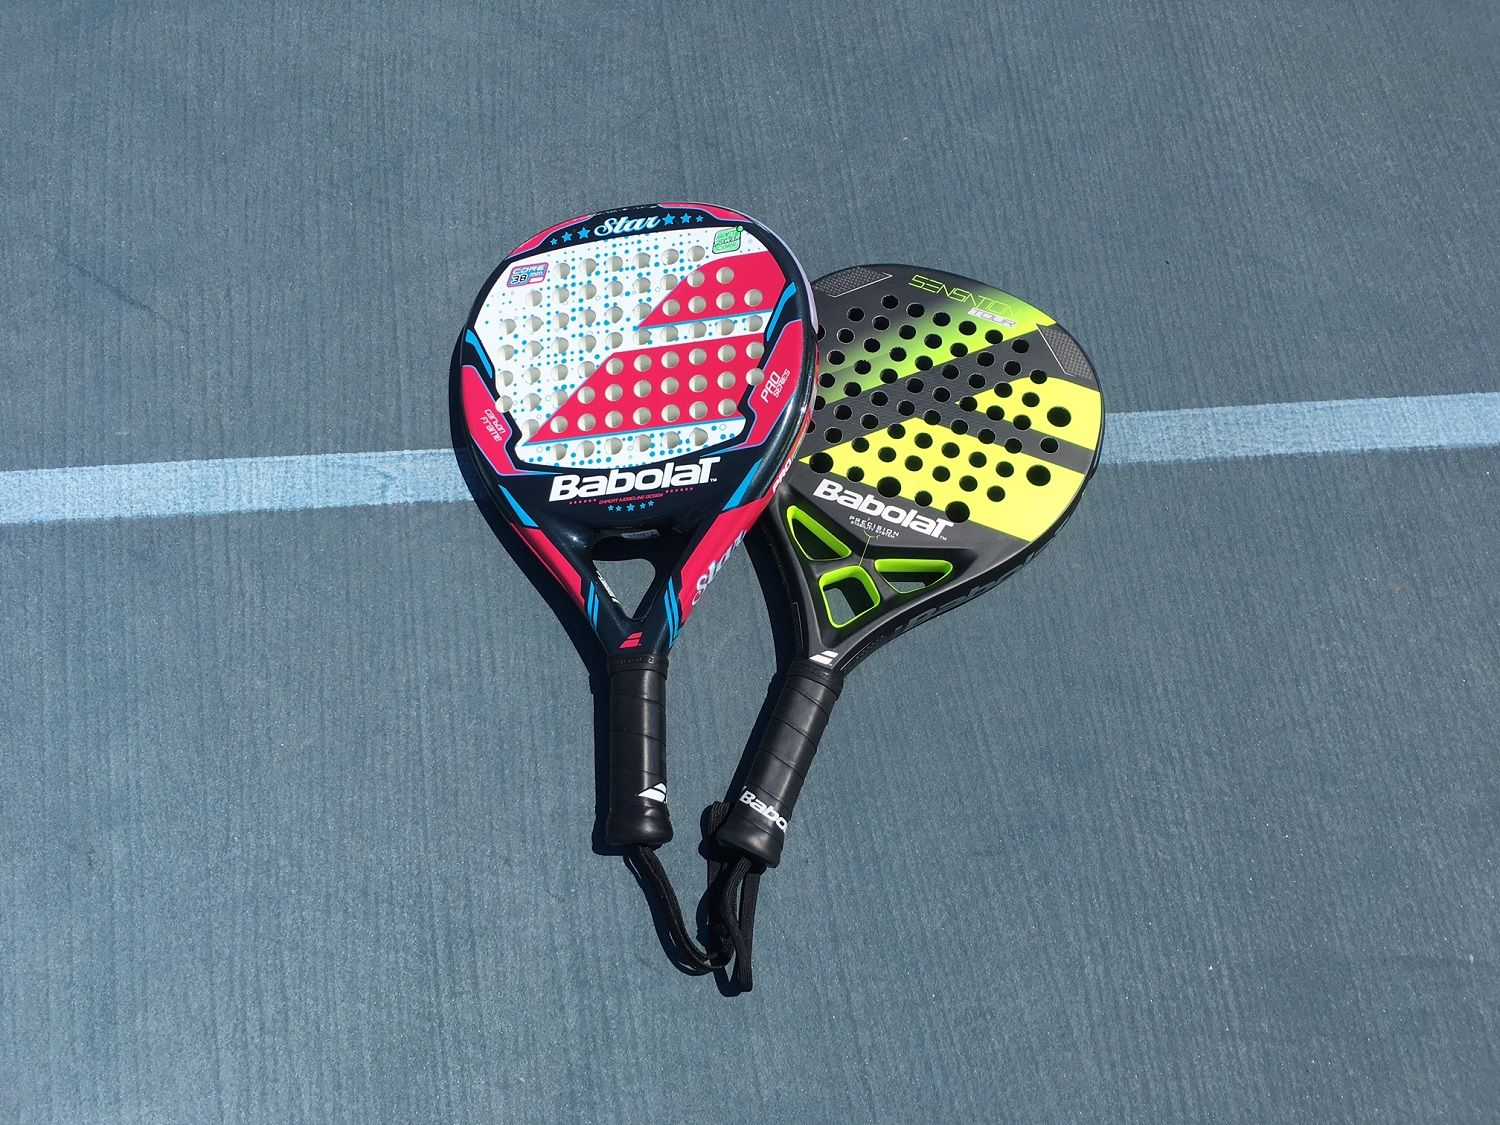 POP Tennis rackets are made of a memory foam composite and are several inches shorter than a traditional racket. (WTOP/Noah Frank)